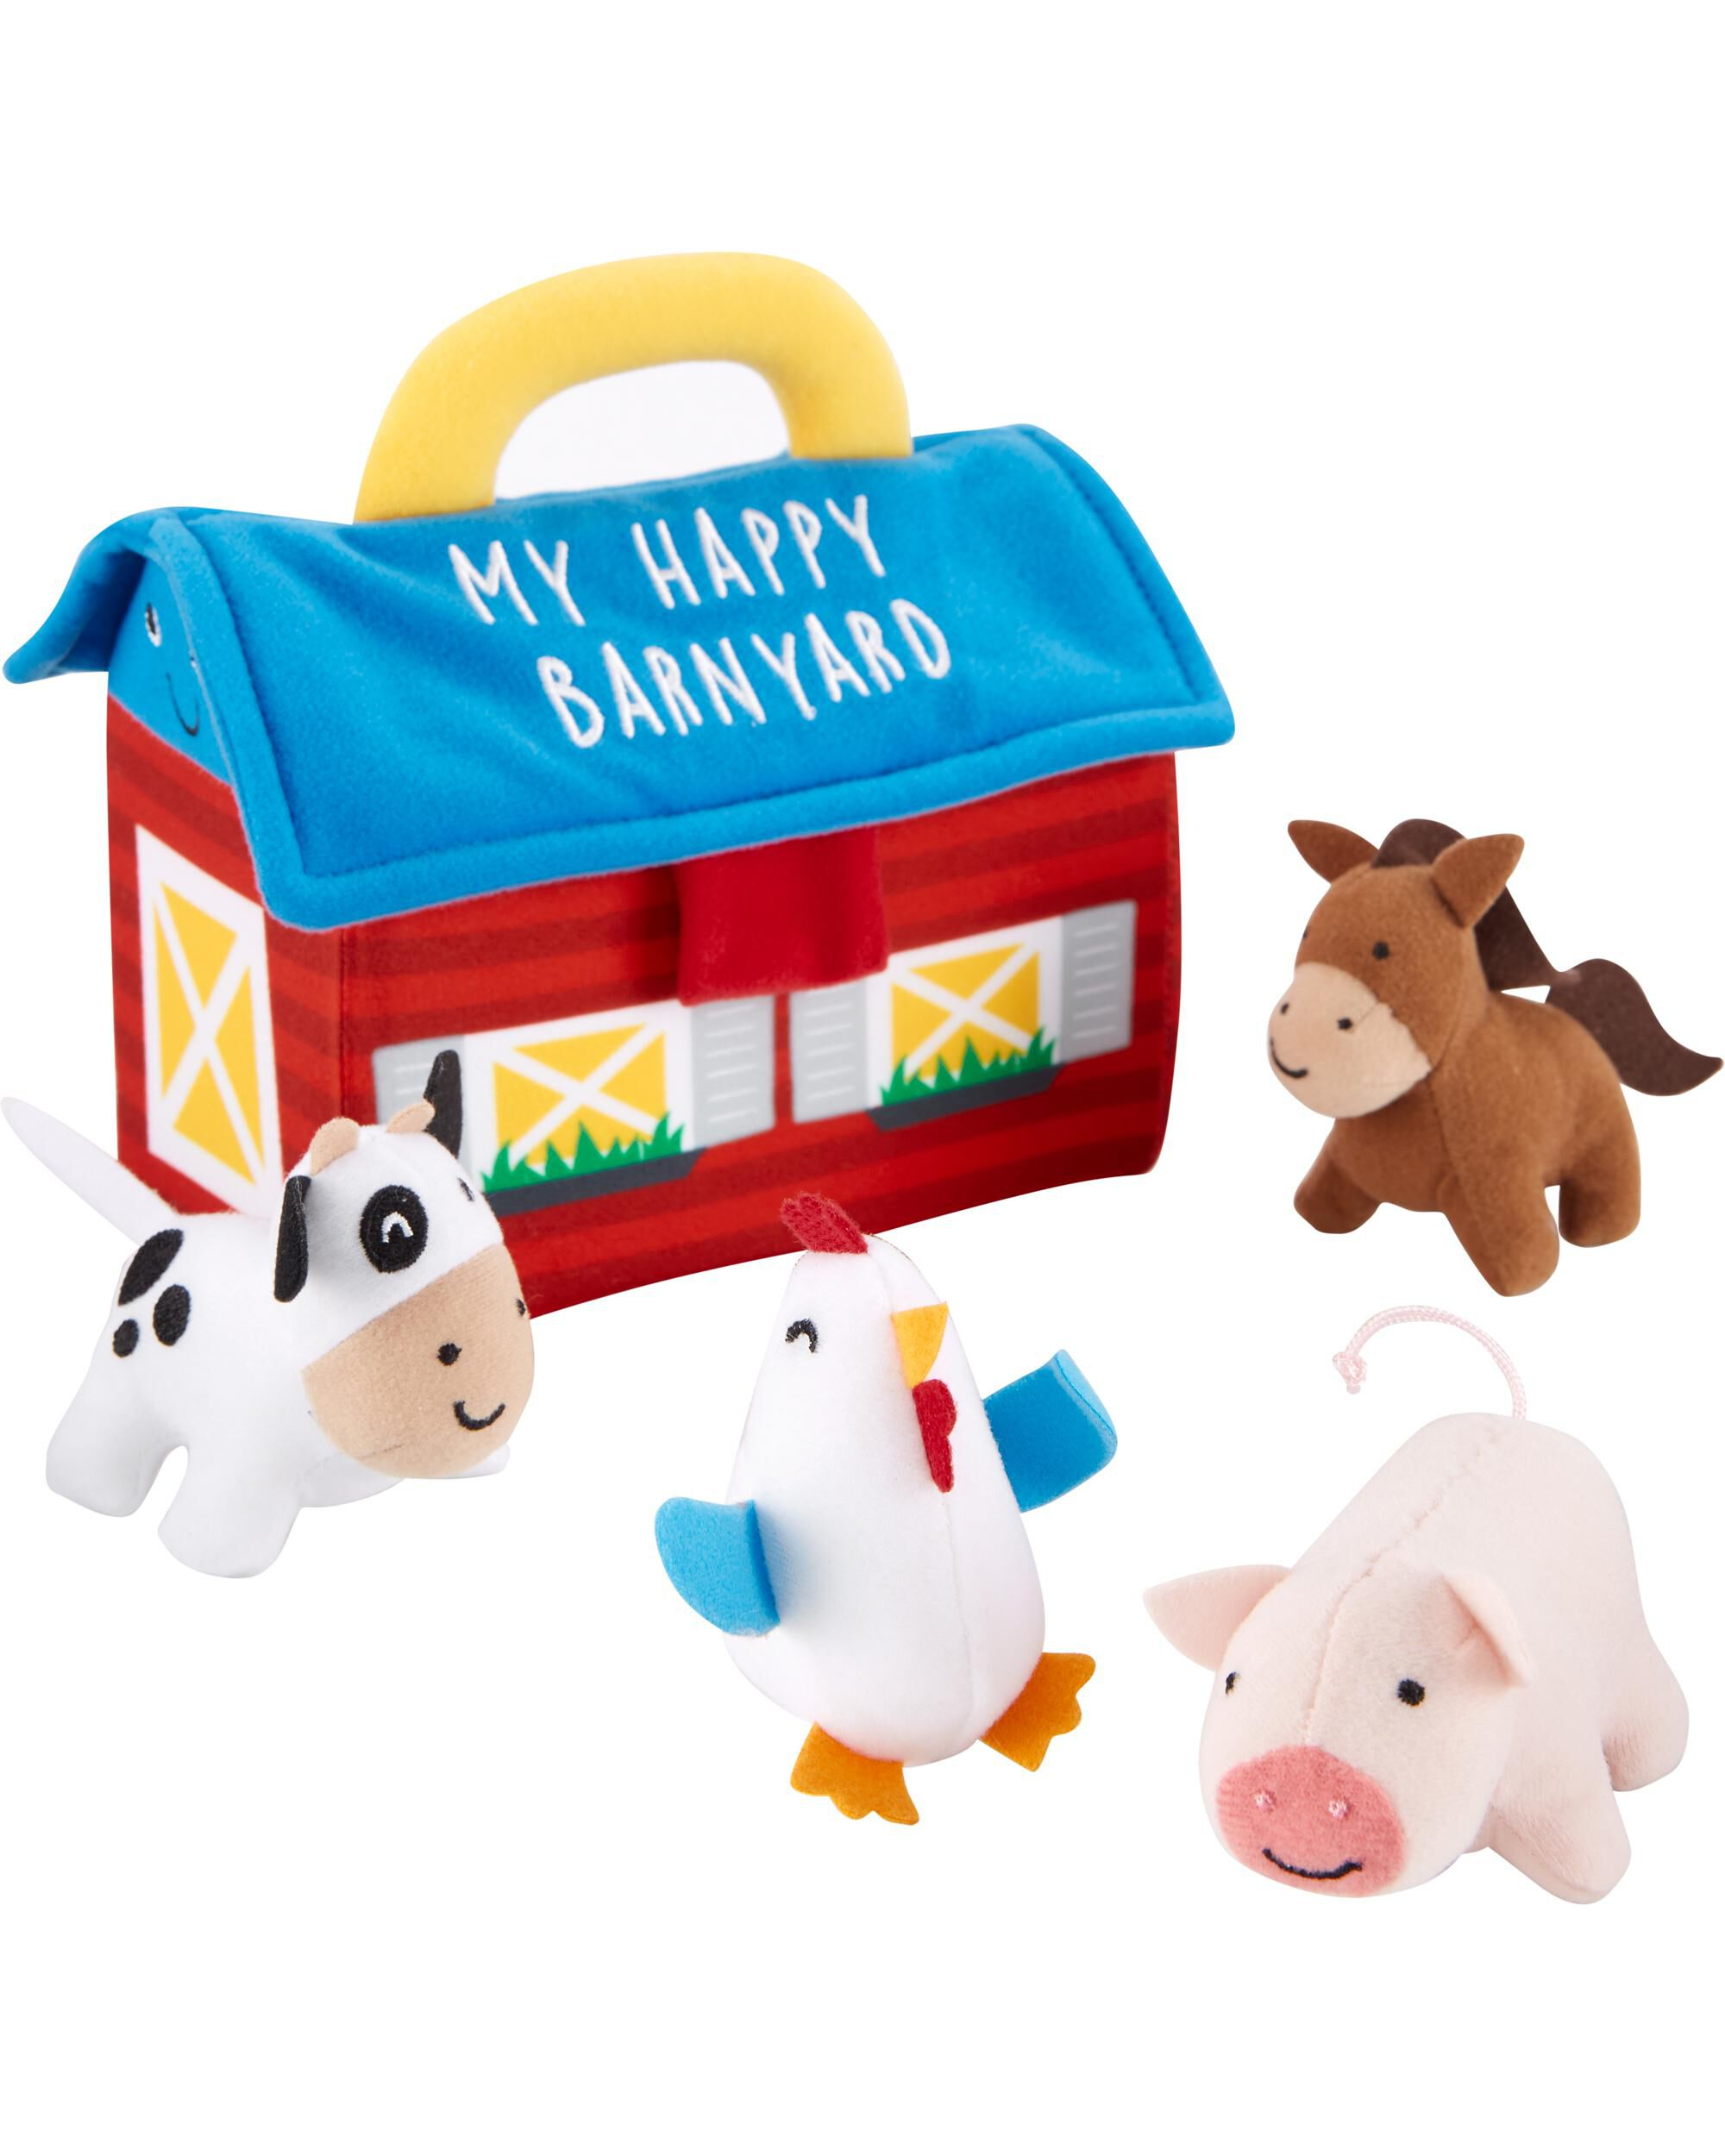 Oshkoshbgosh Plush Barn Activity Set